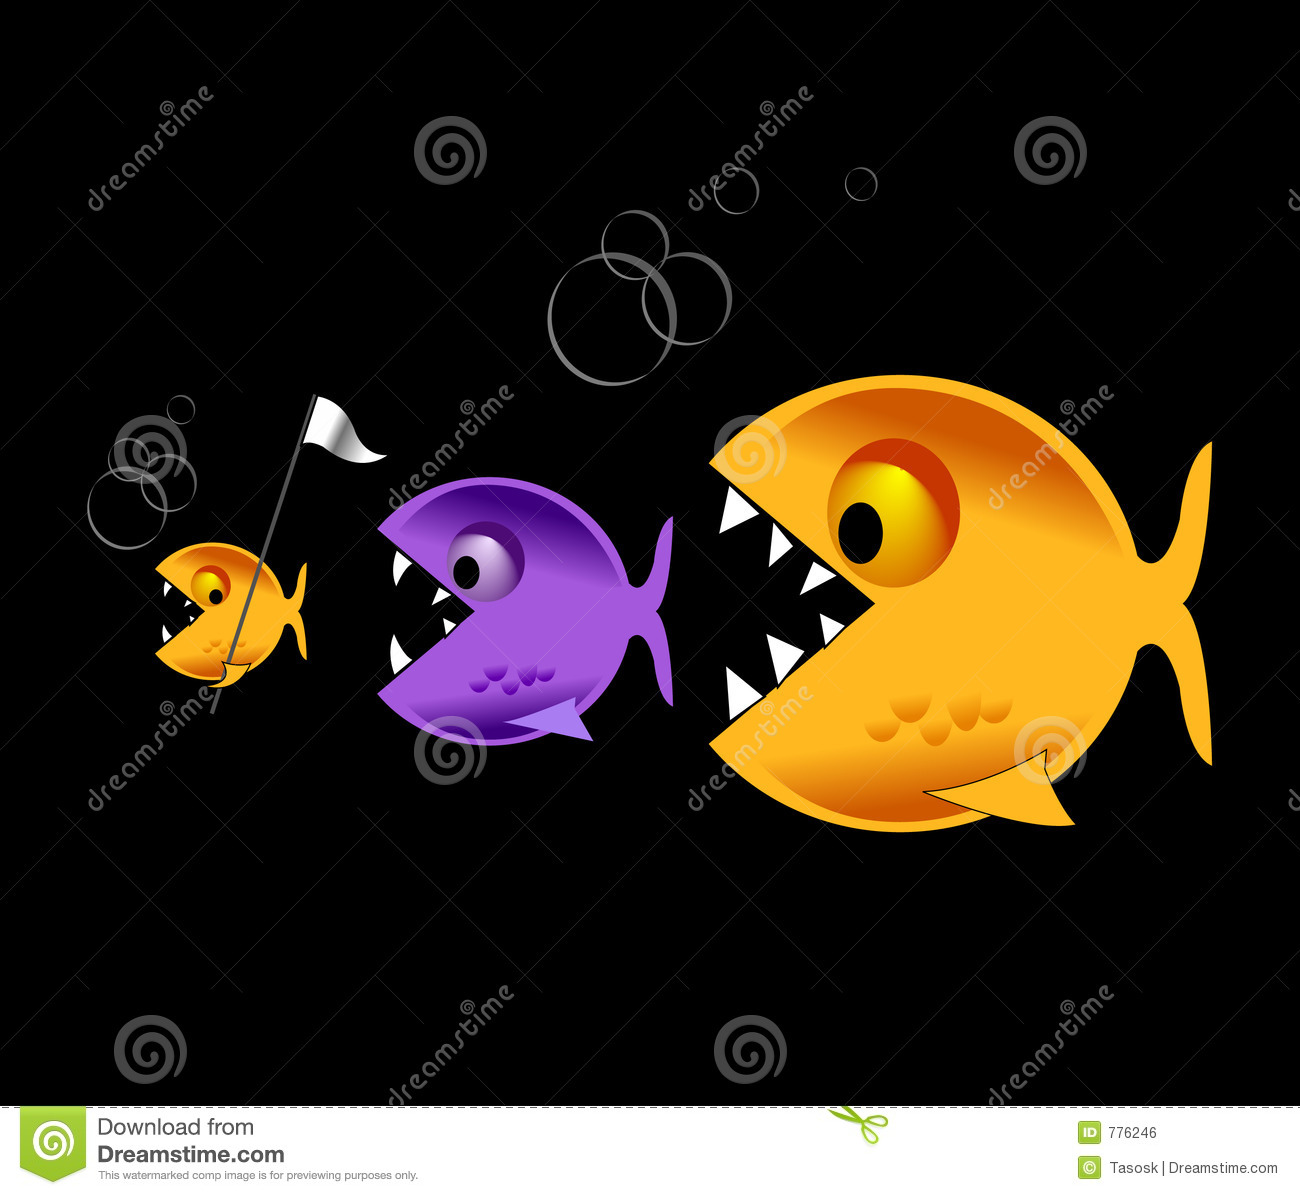 Big fish eat little fish royalty free stock image image for Big fish little fish